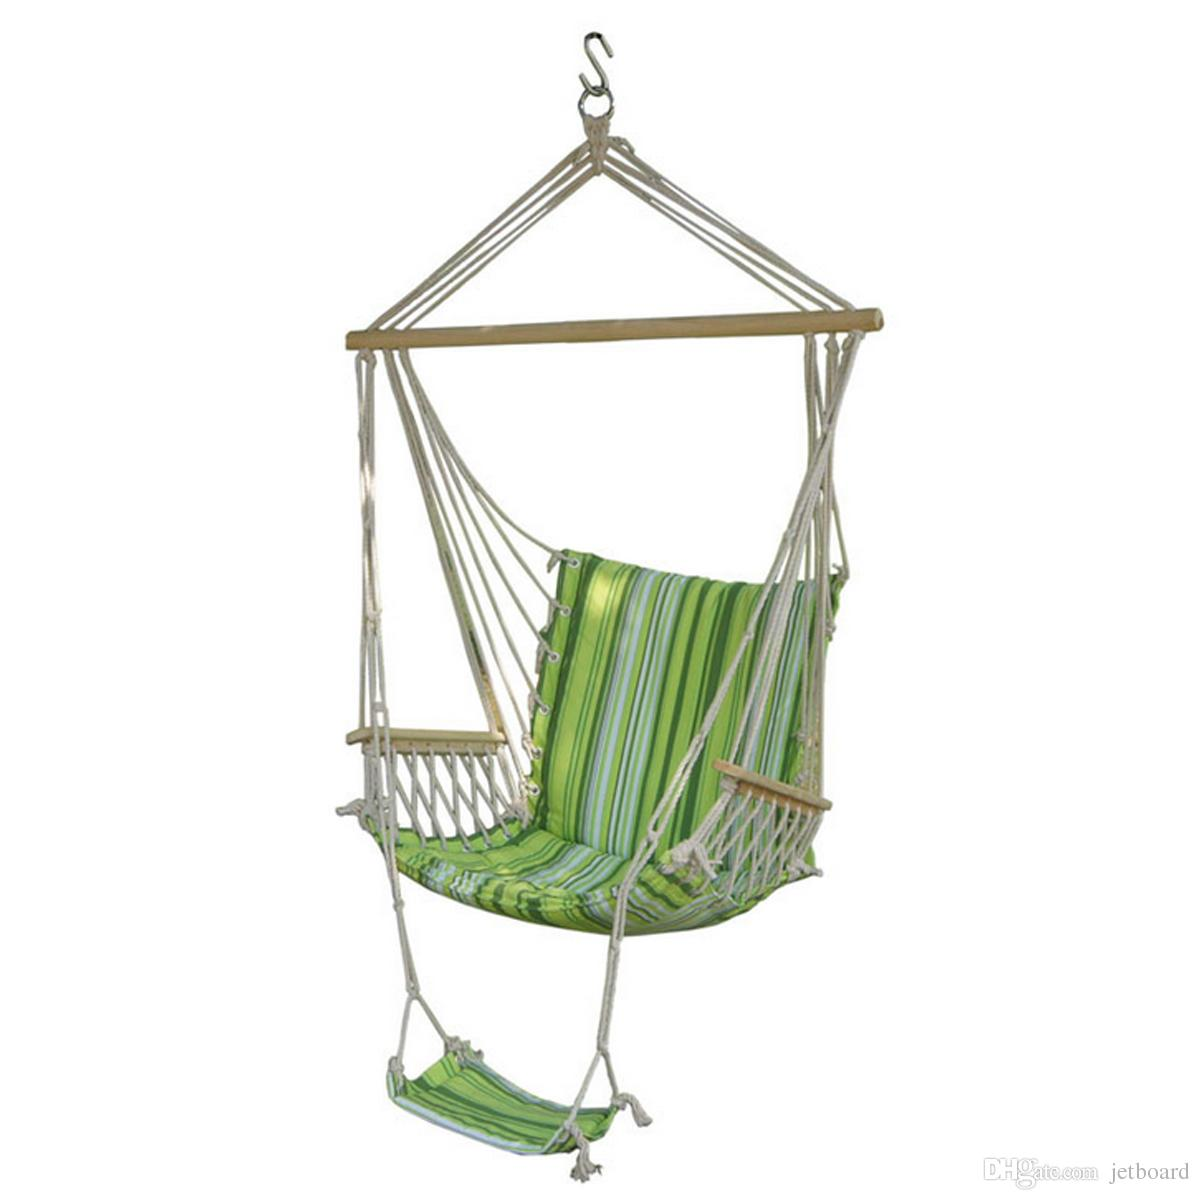 Outdoor Canvas Swing Hammock Leisure Hanging Chair Garden Patio Yard